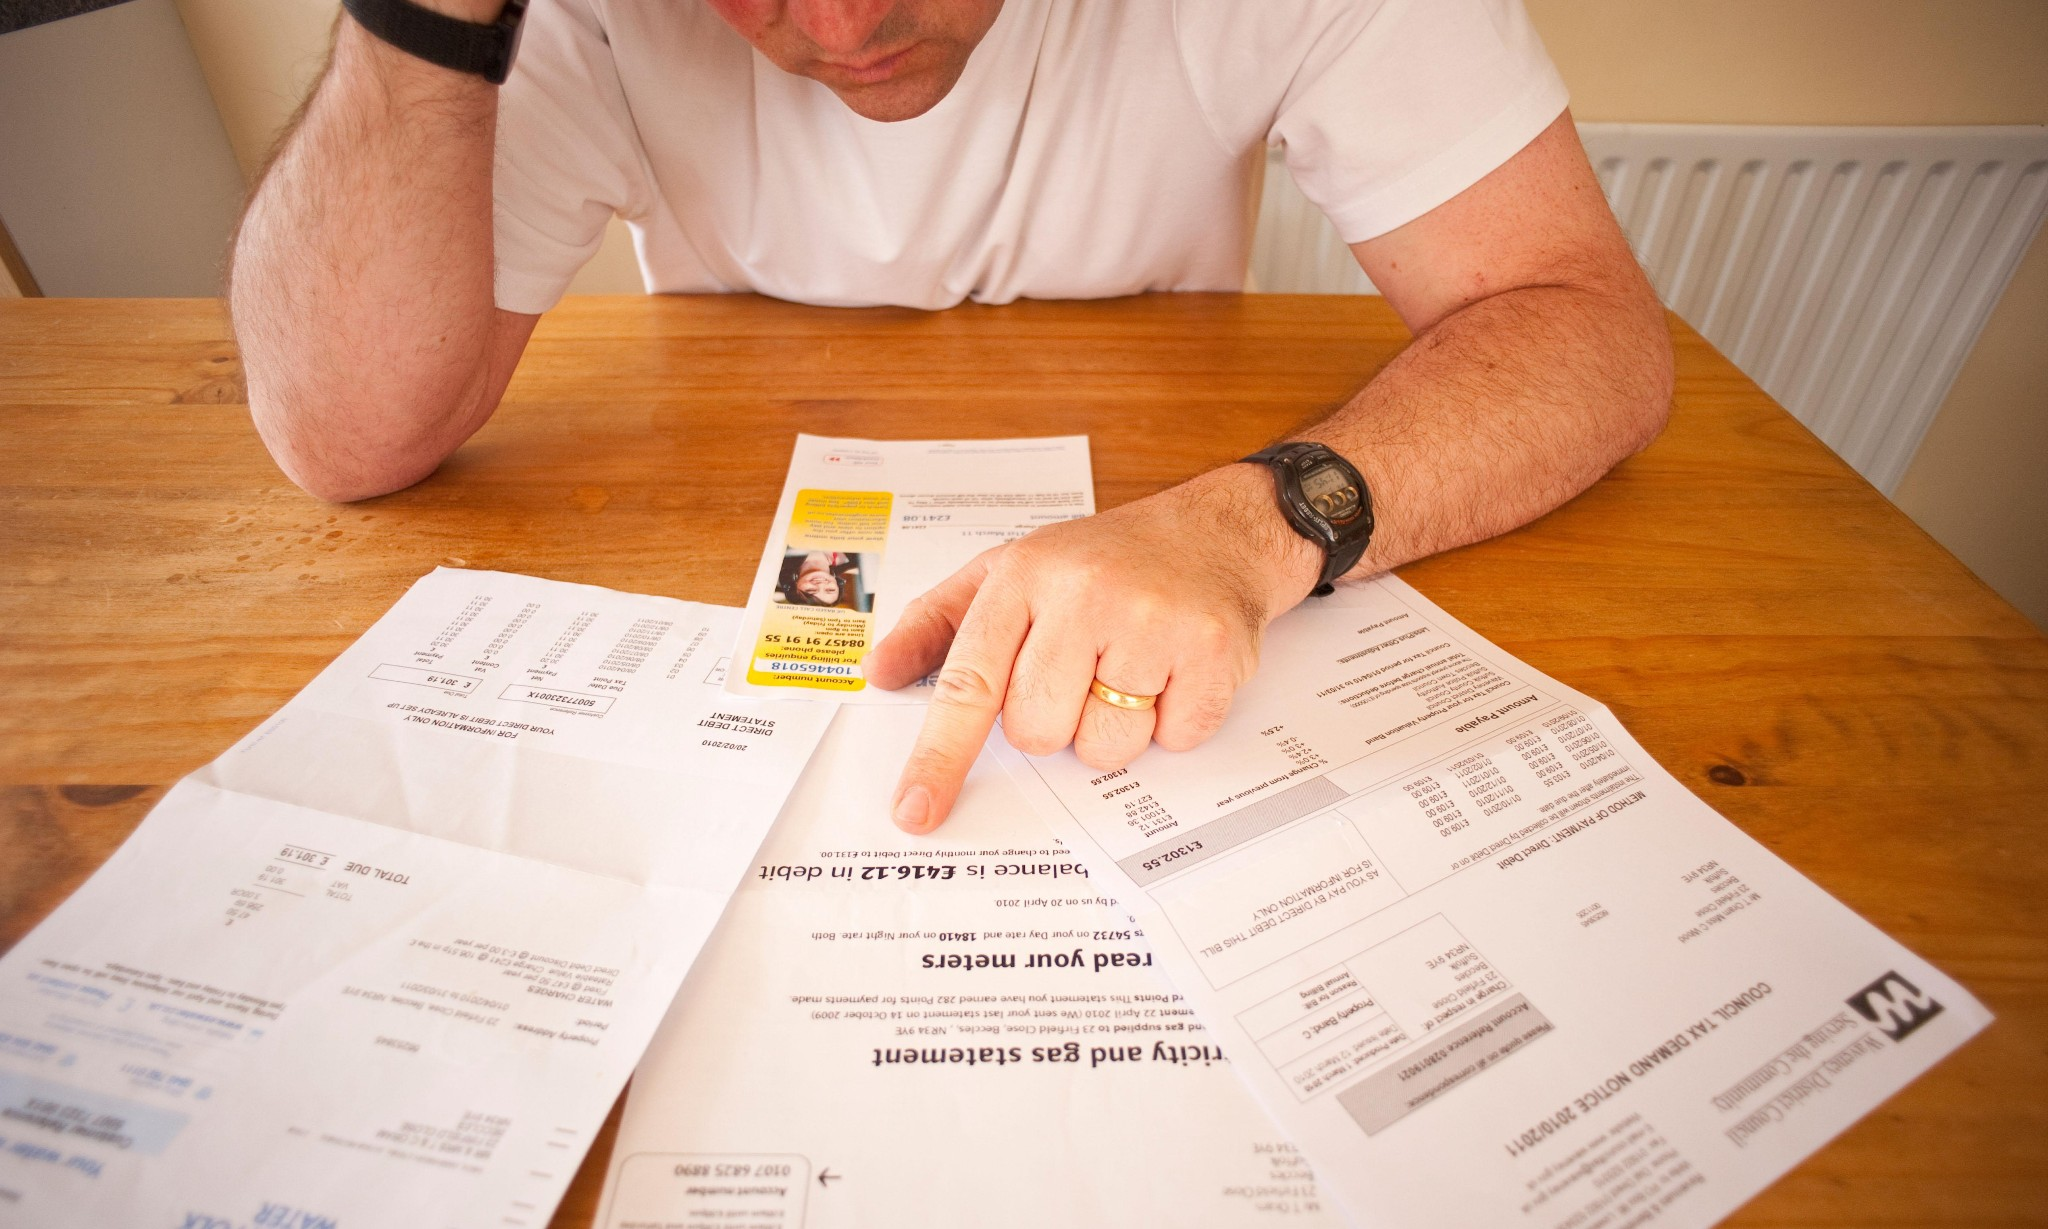 The big danger today is people don't realise they have a debt problem